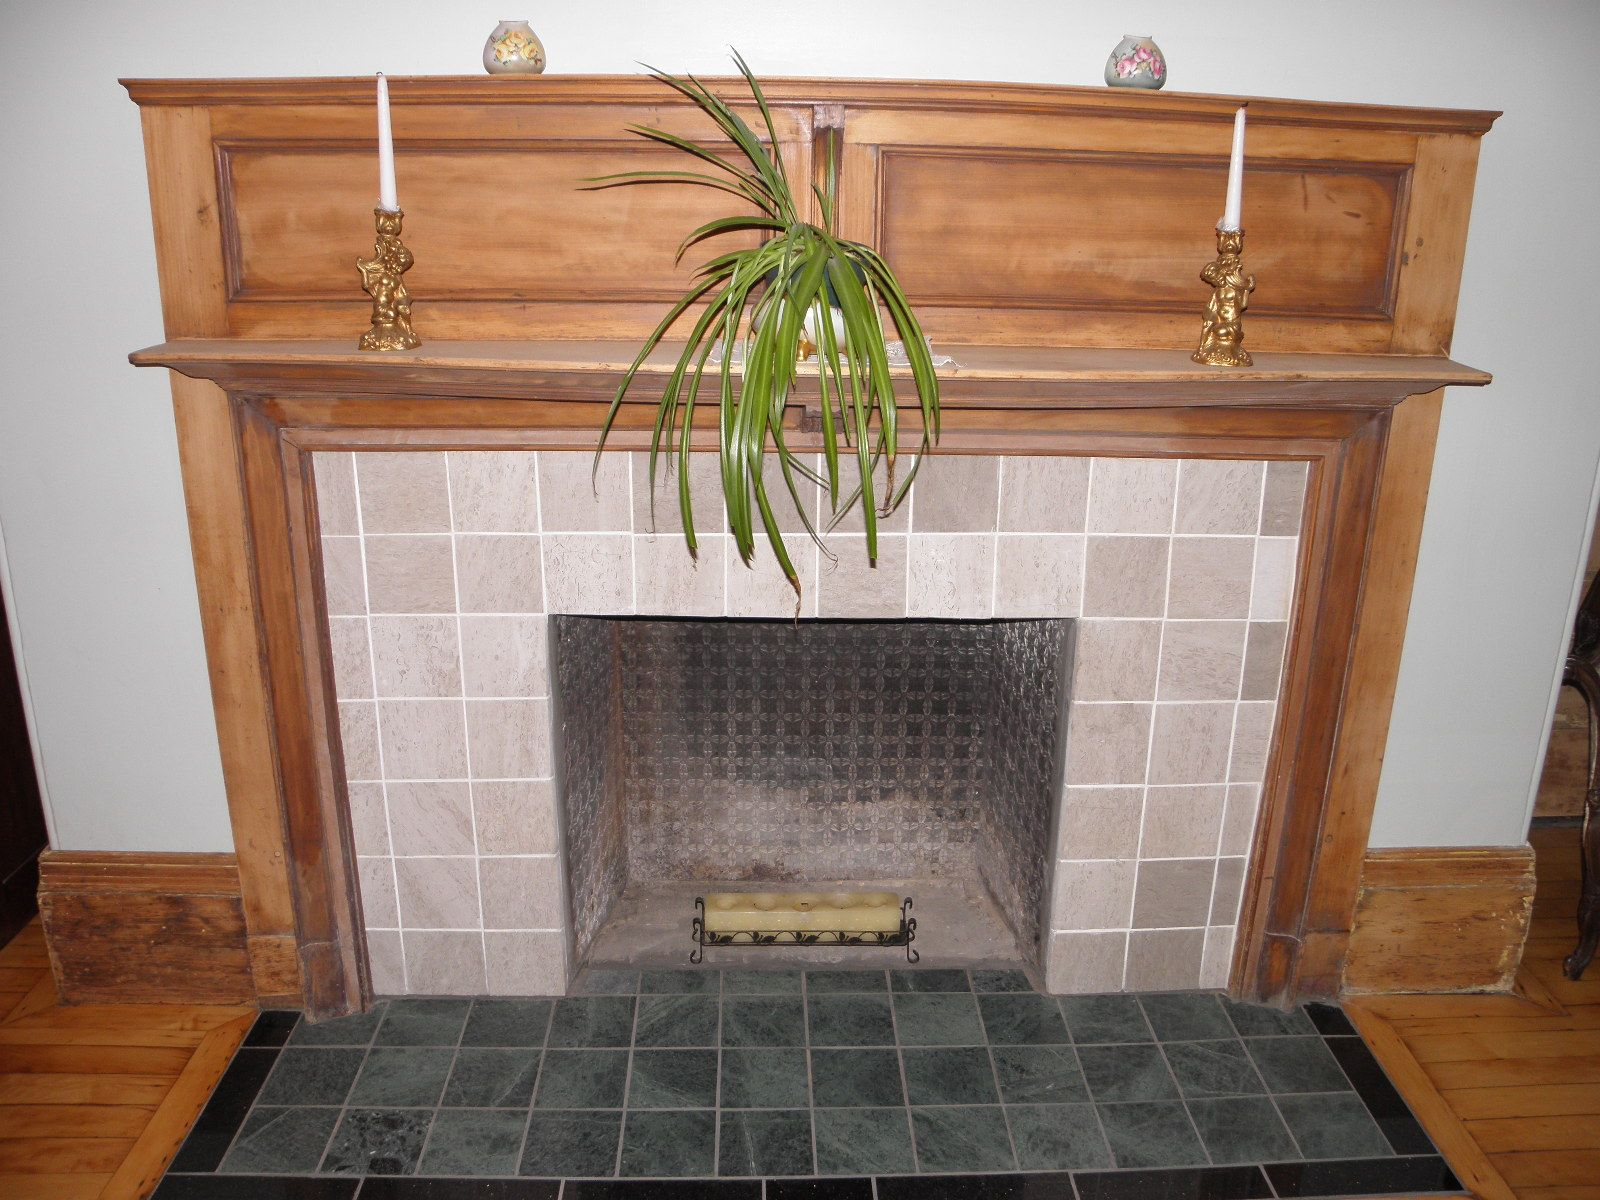 restored cherry wood fireplace mantle with a gray marble surround